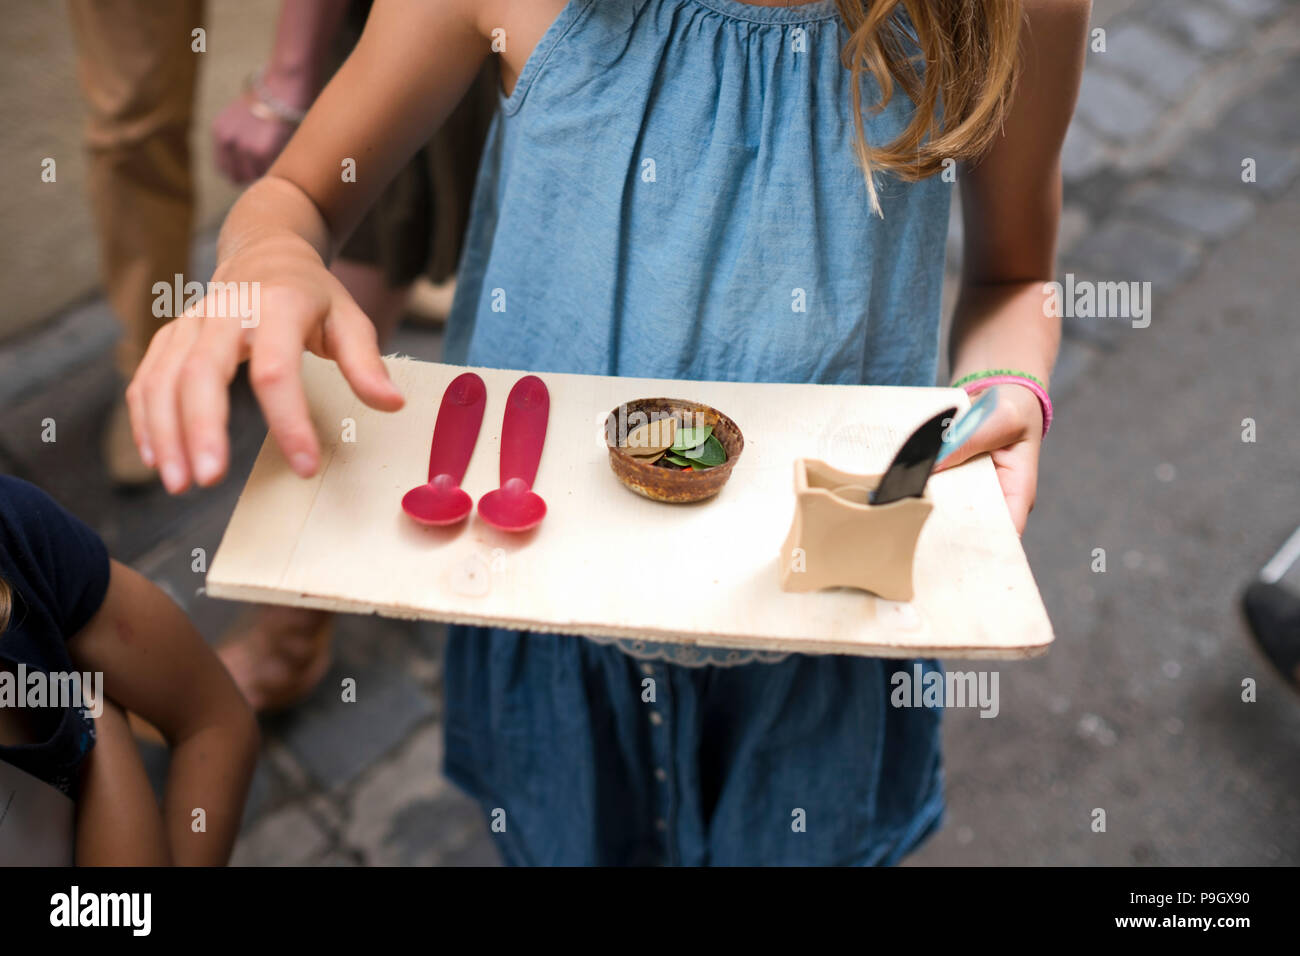 cropped frontal view of 6 year old girl holding up pretend meal tray made of a scrap of wood, displaying a rusty top full of leaves and two red spoons - Stock Image